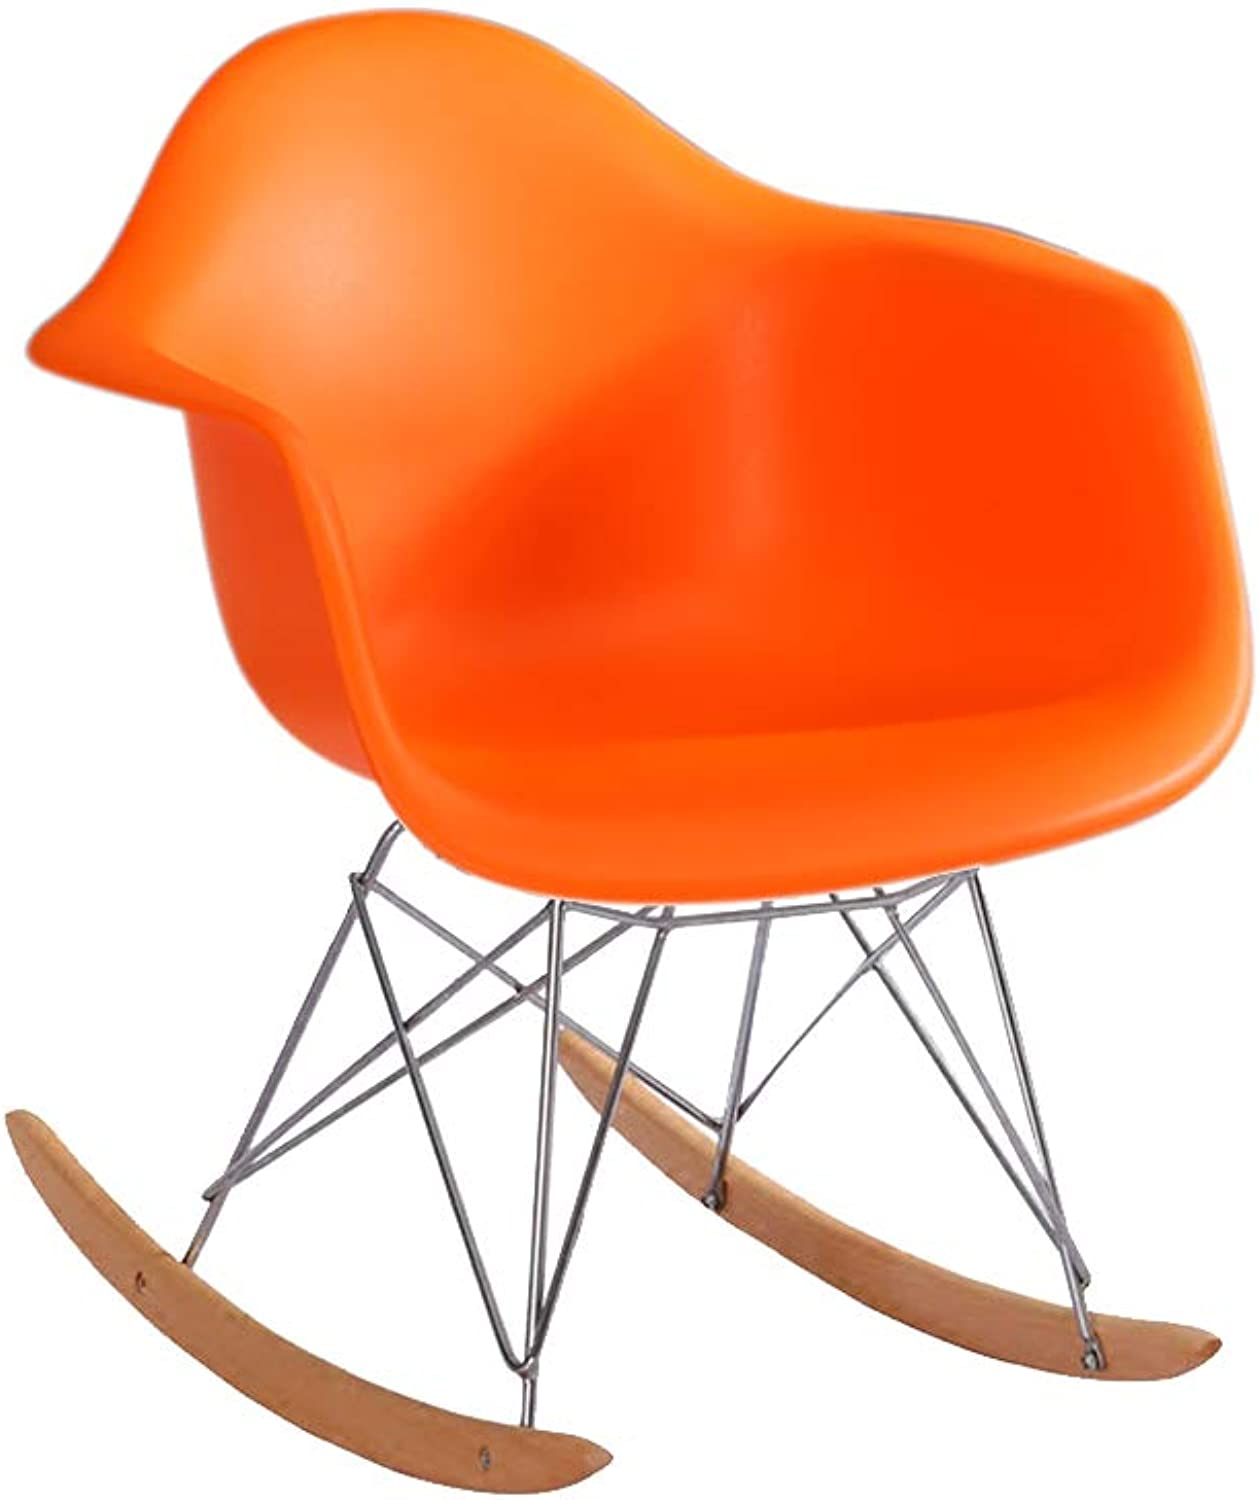 Chair-Modern Minimalist Solid Wood Rocking Chair Recliner Lounge Chair Lounge Chair (color   orange)